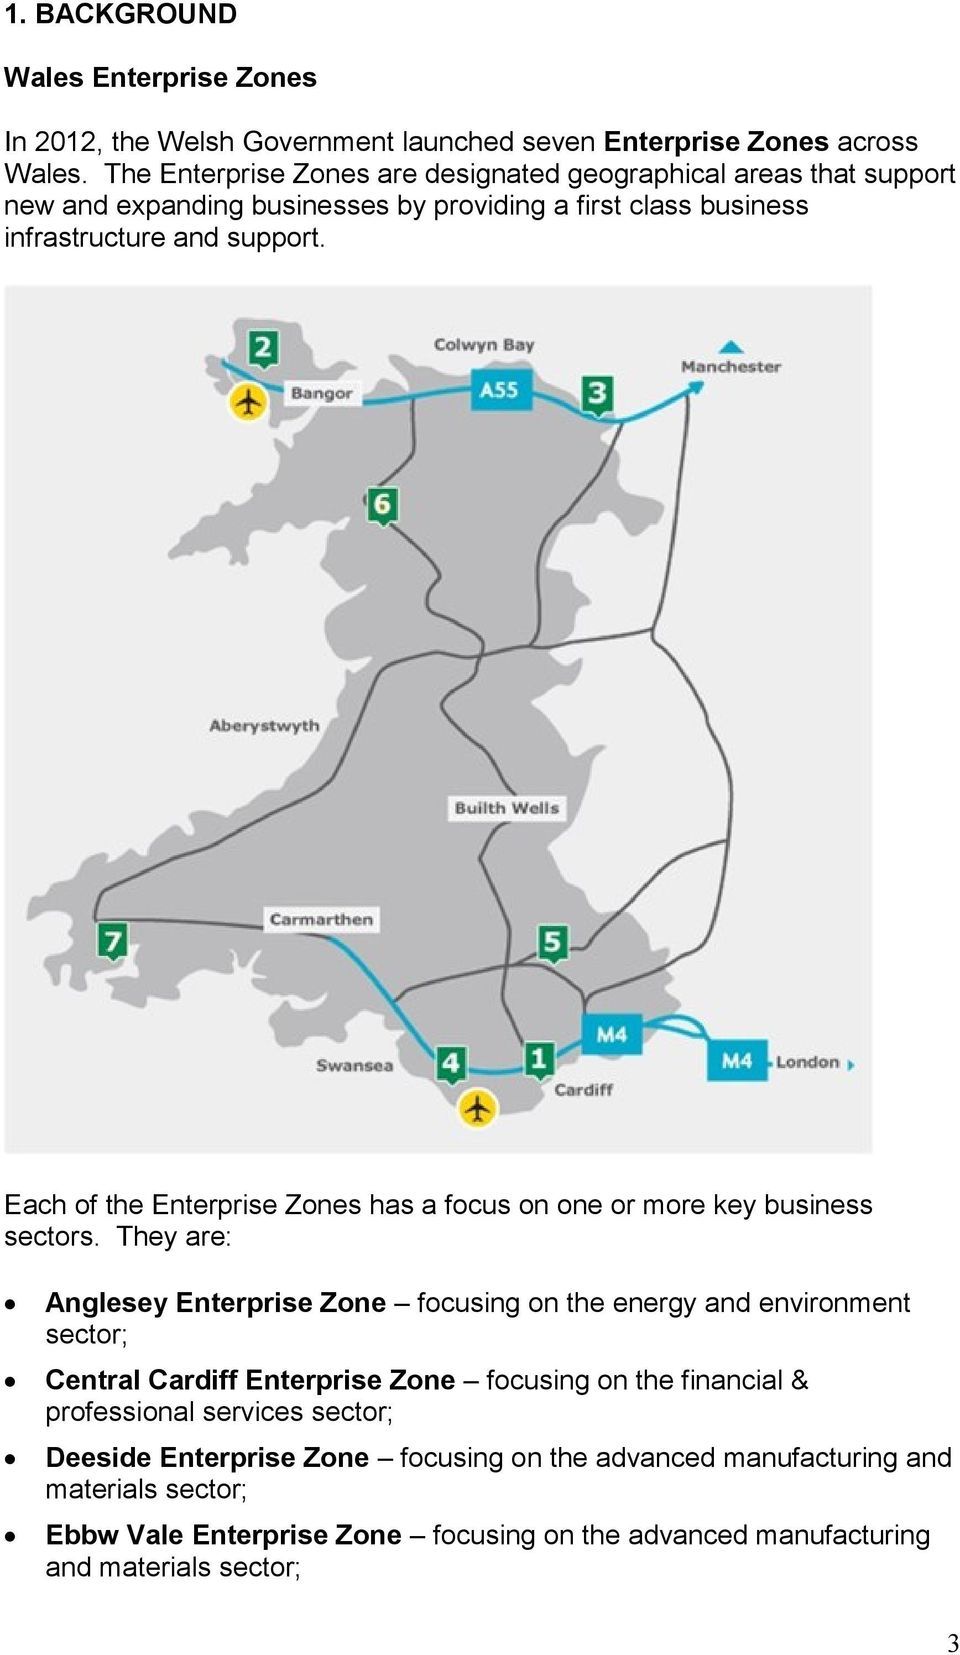 Each of the Enterprise Zones has a focus on one or more key business sectors.